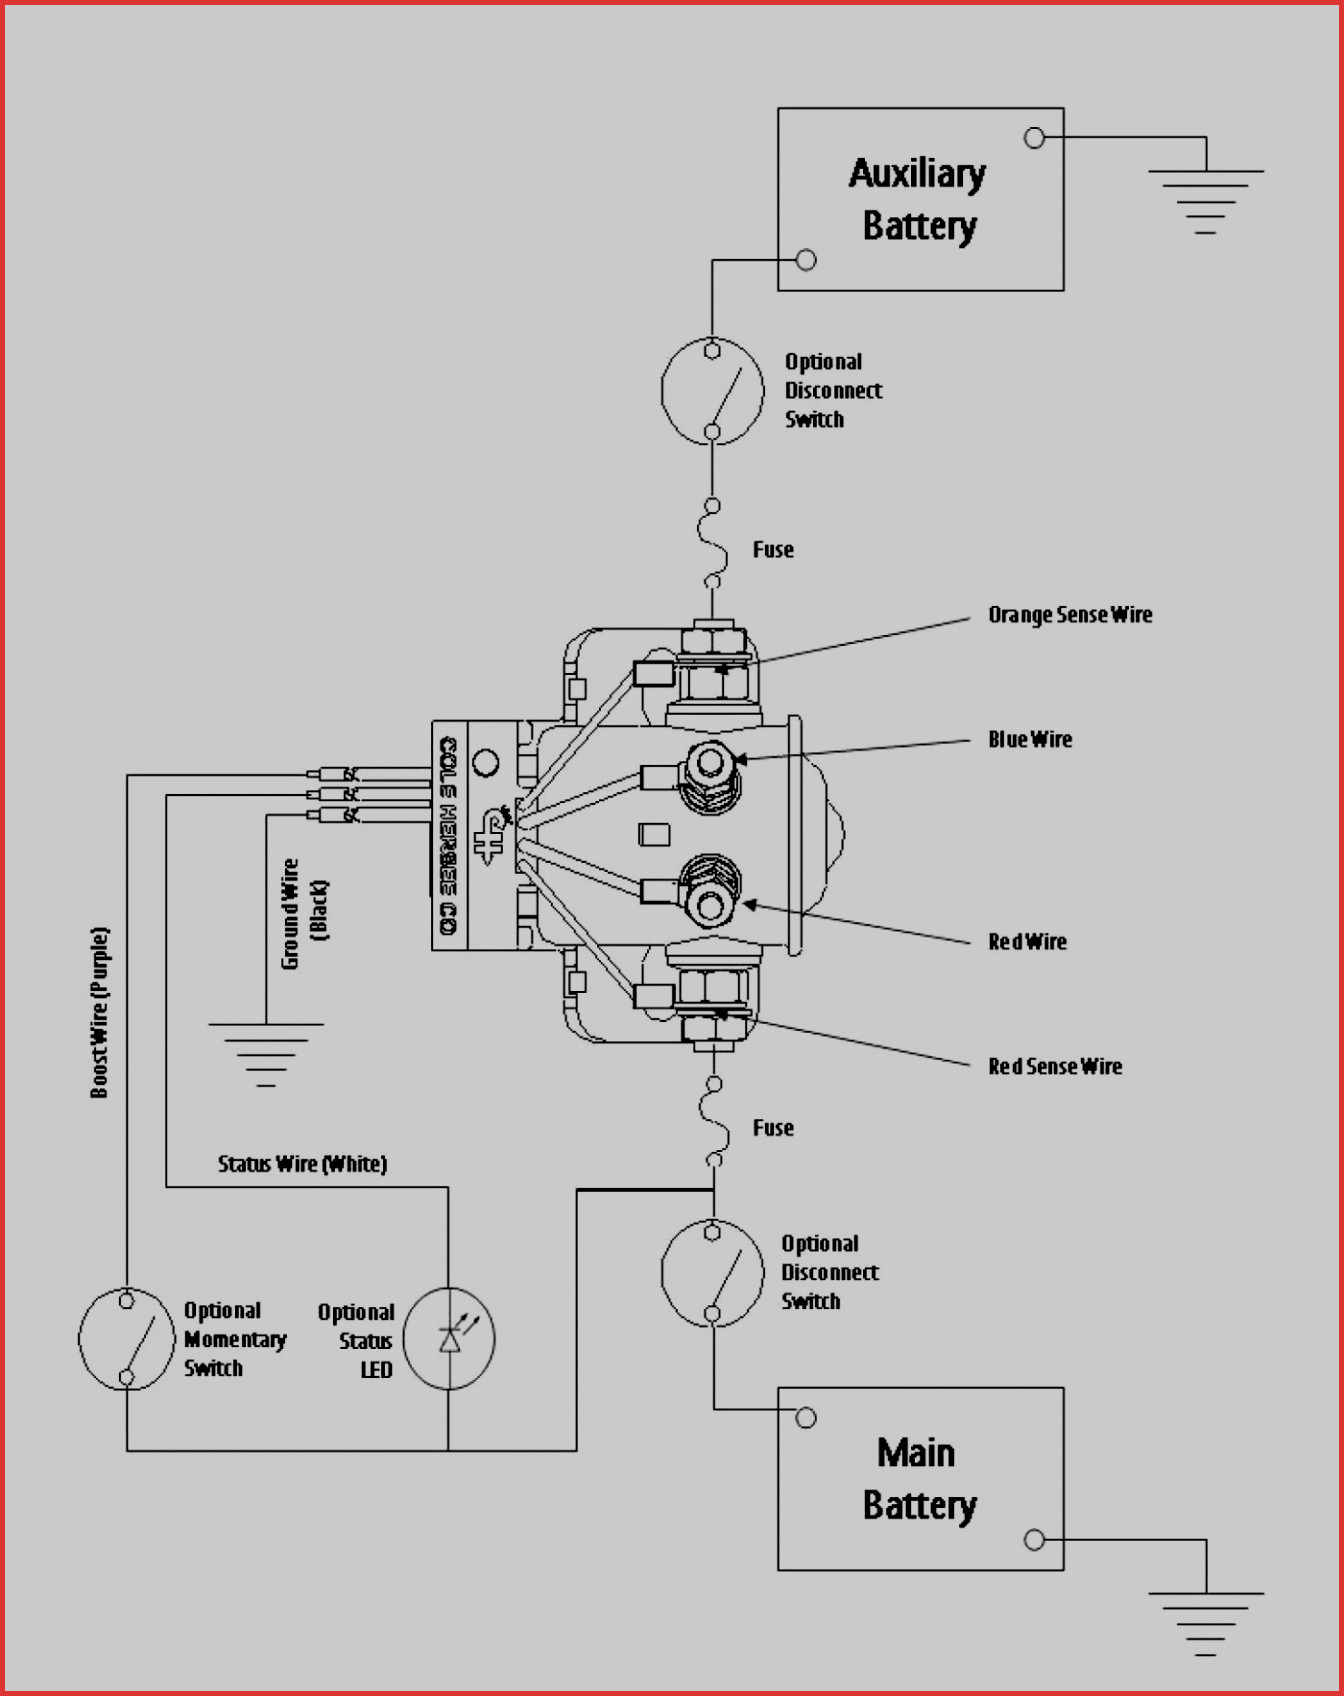 Honeywell He 300 Wiring Diagram | Wiring Diagram - Honeywell Zone Valve Wiring Diagram